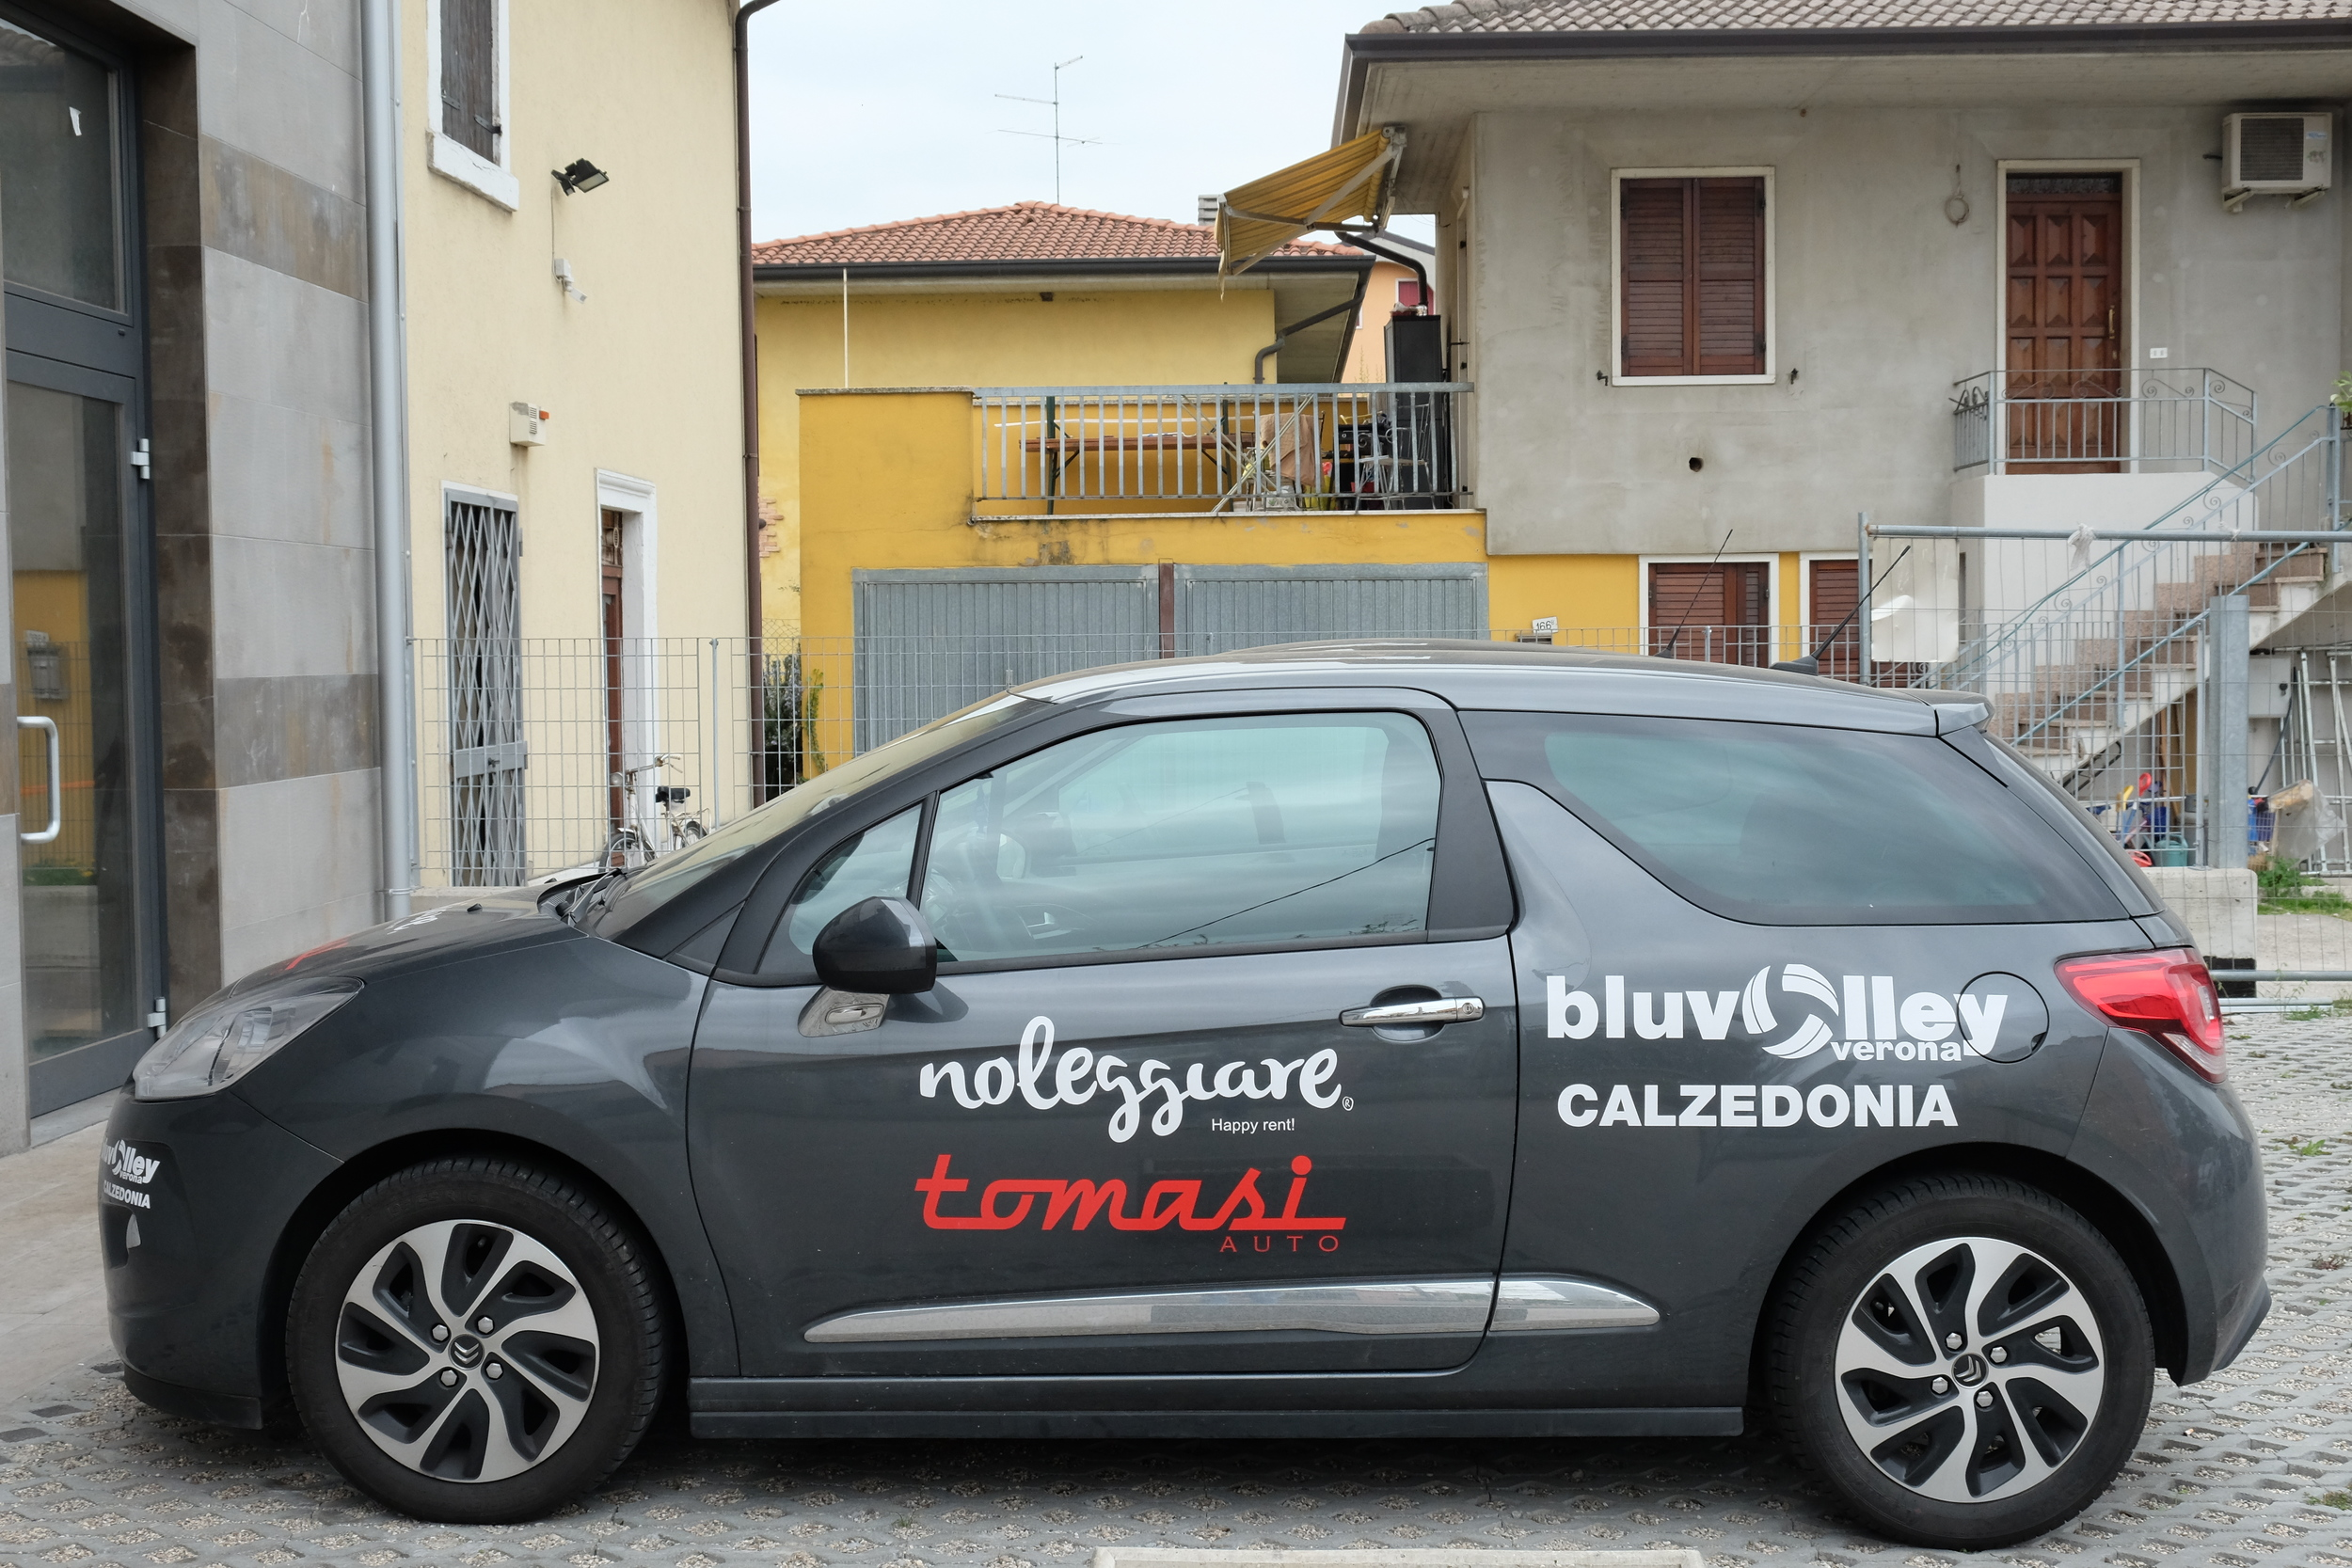 Our sweet little whip that had just about every sticker in the world on it. Fun fact: I was terrified to drive in Italy for the first 3 weeks, because the drivers there can be pretty ruthless and crazy. Lots of horn honking and lots of...gestures.